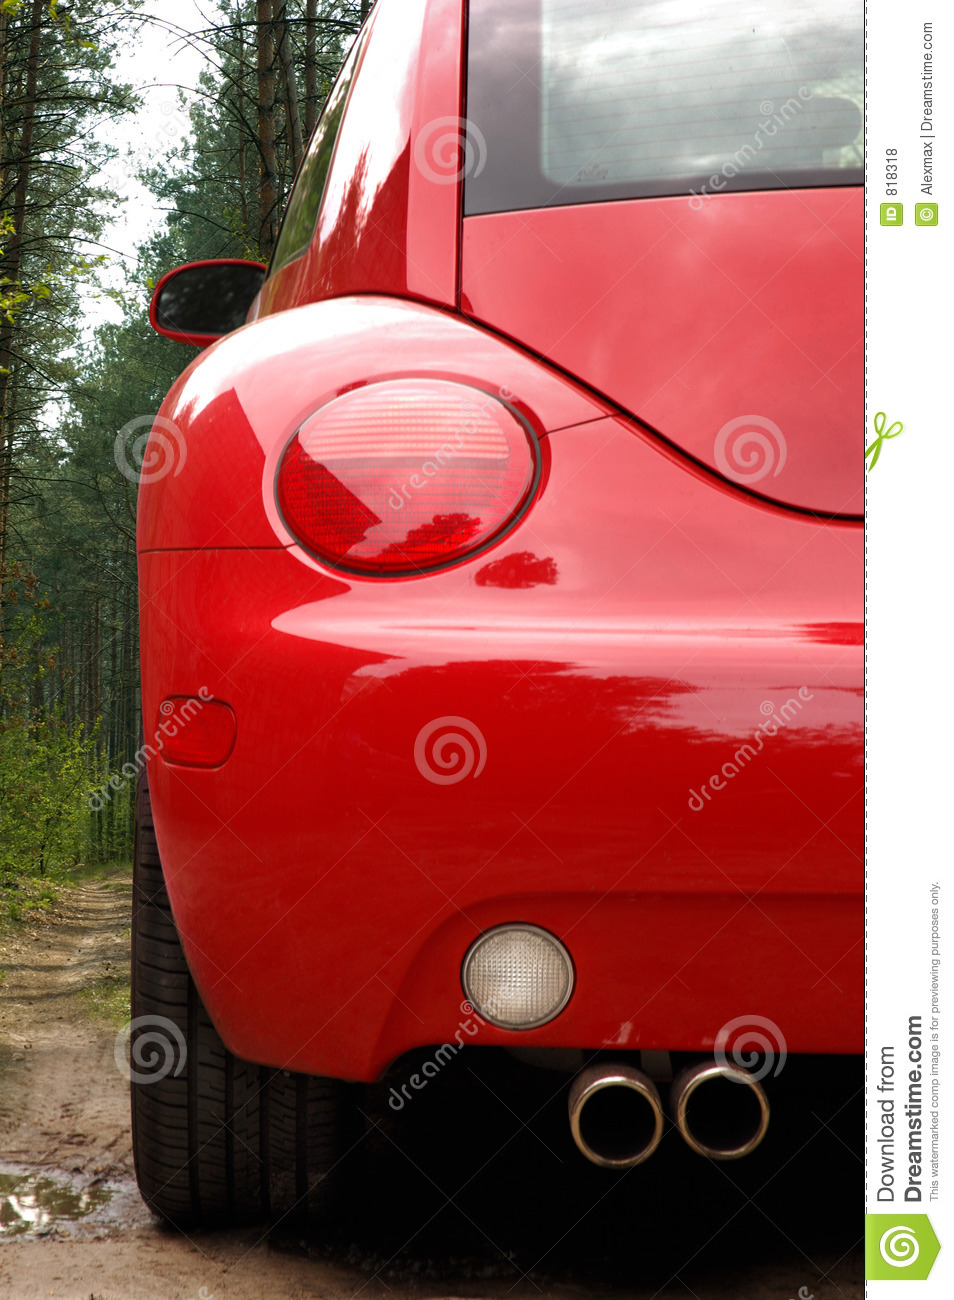 Red car back